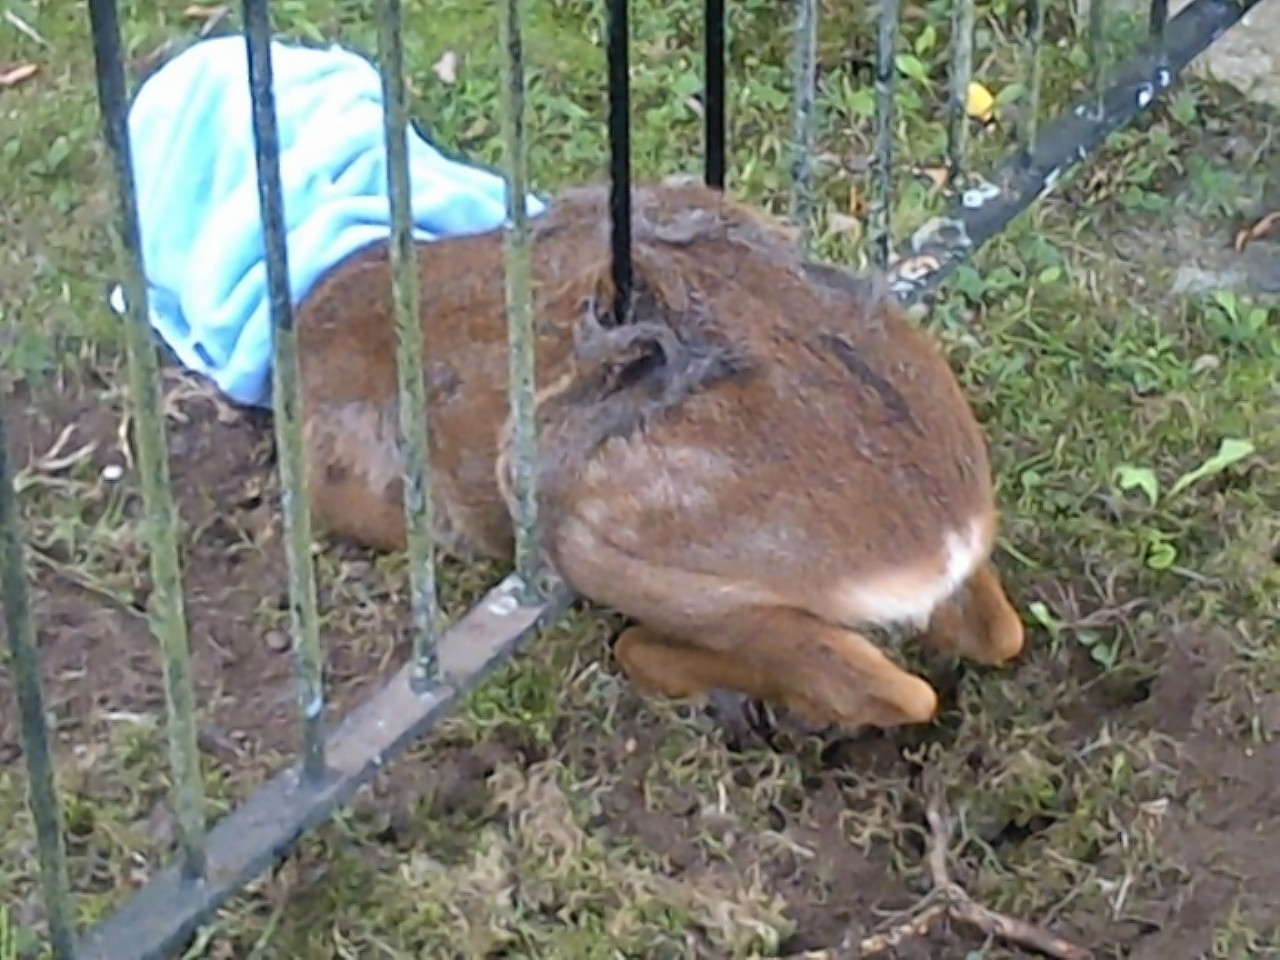 The young deer trapped in the fence in Inverness